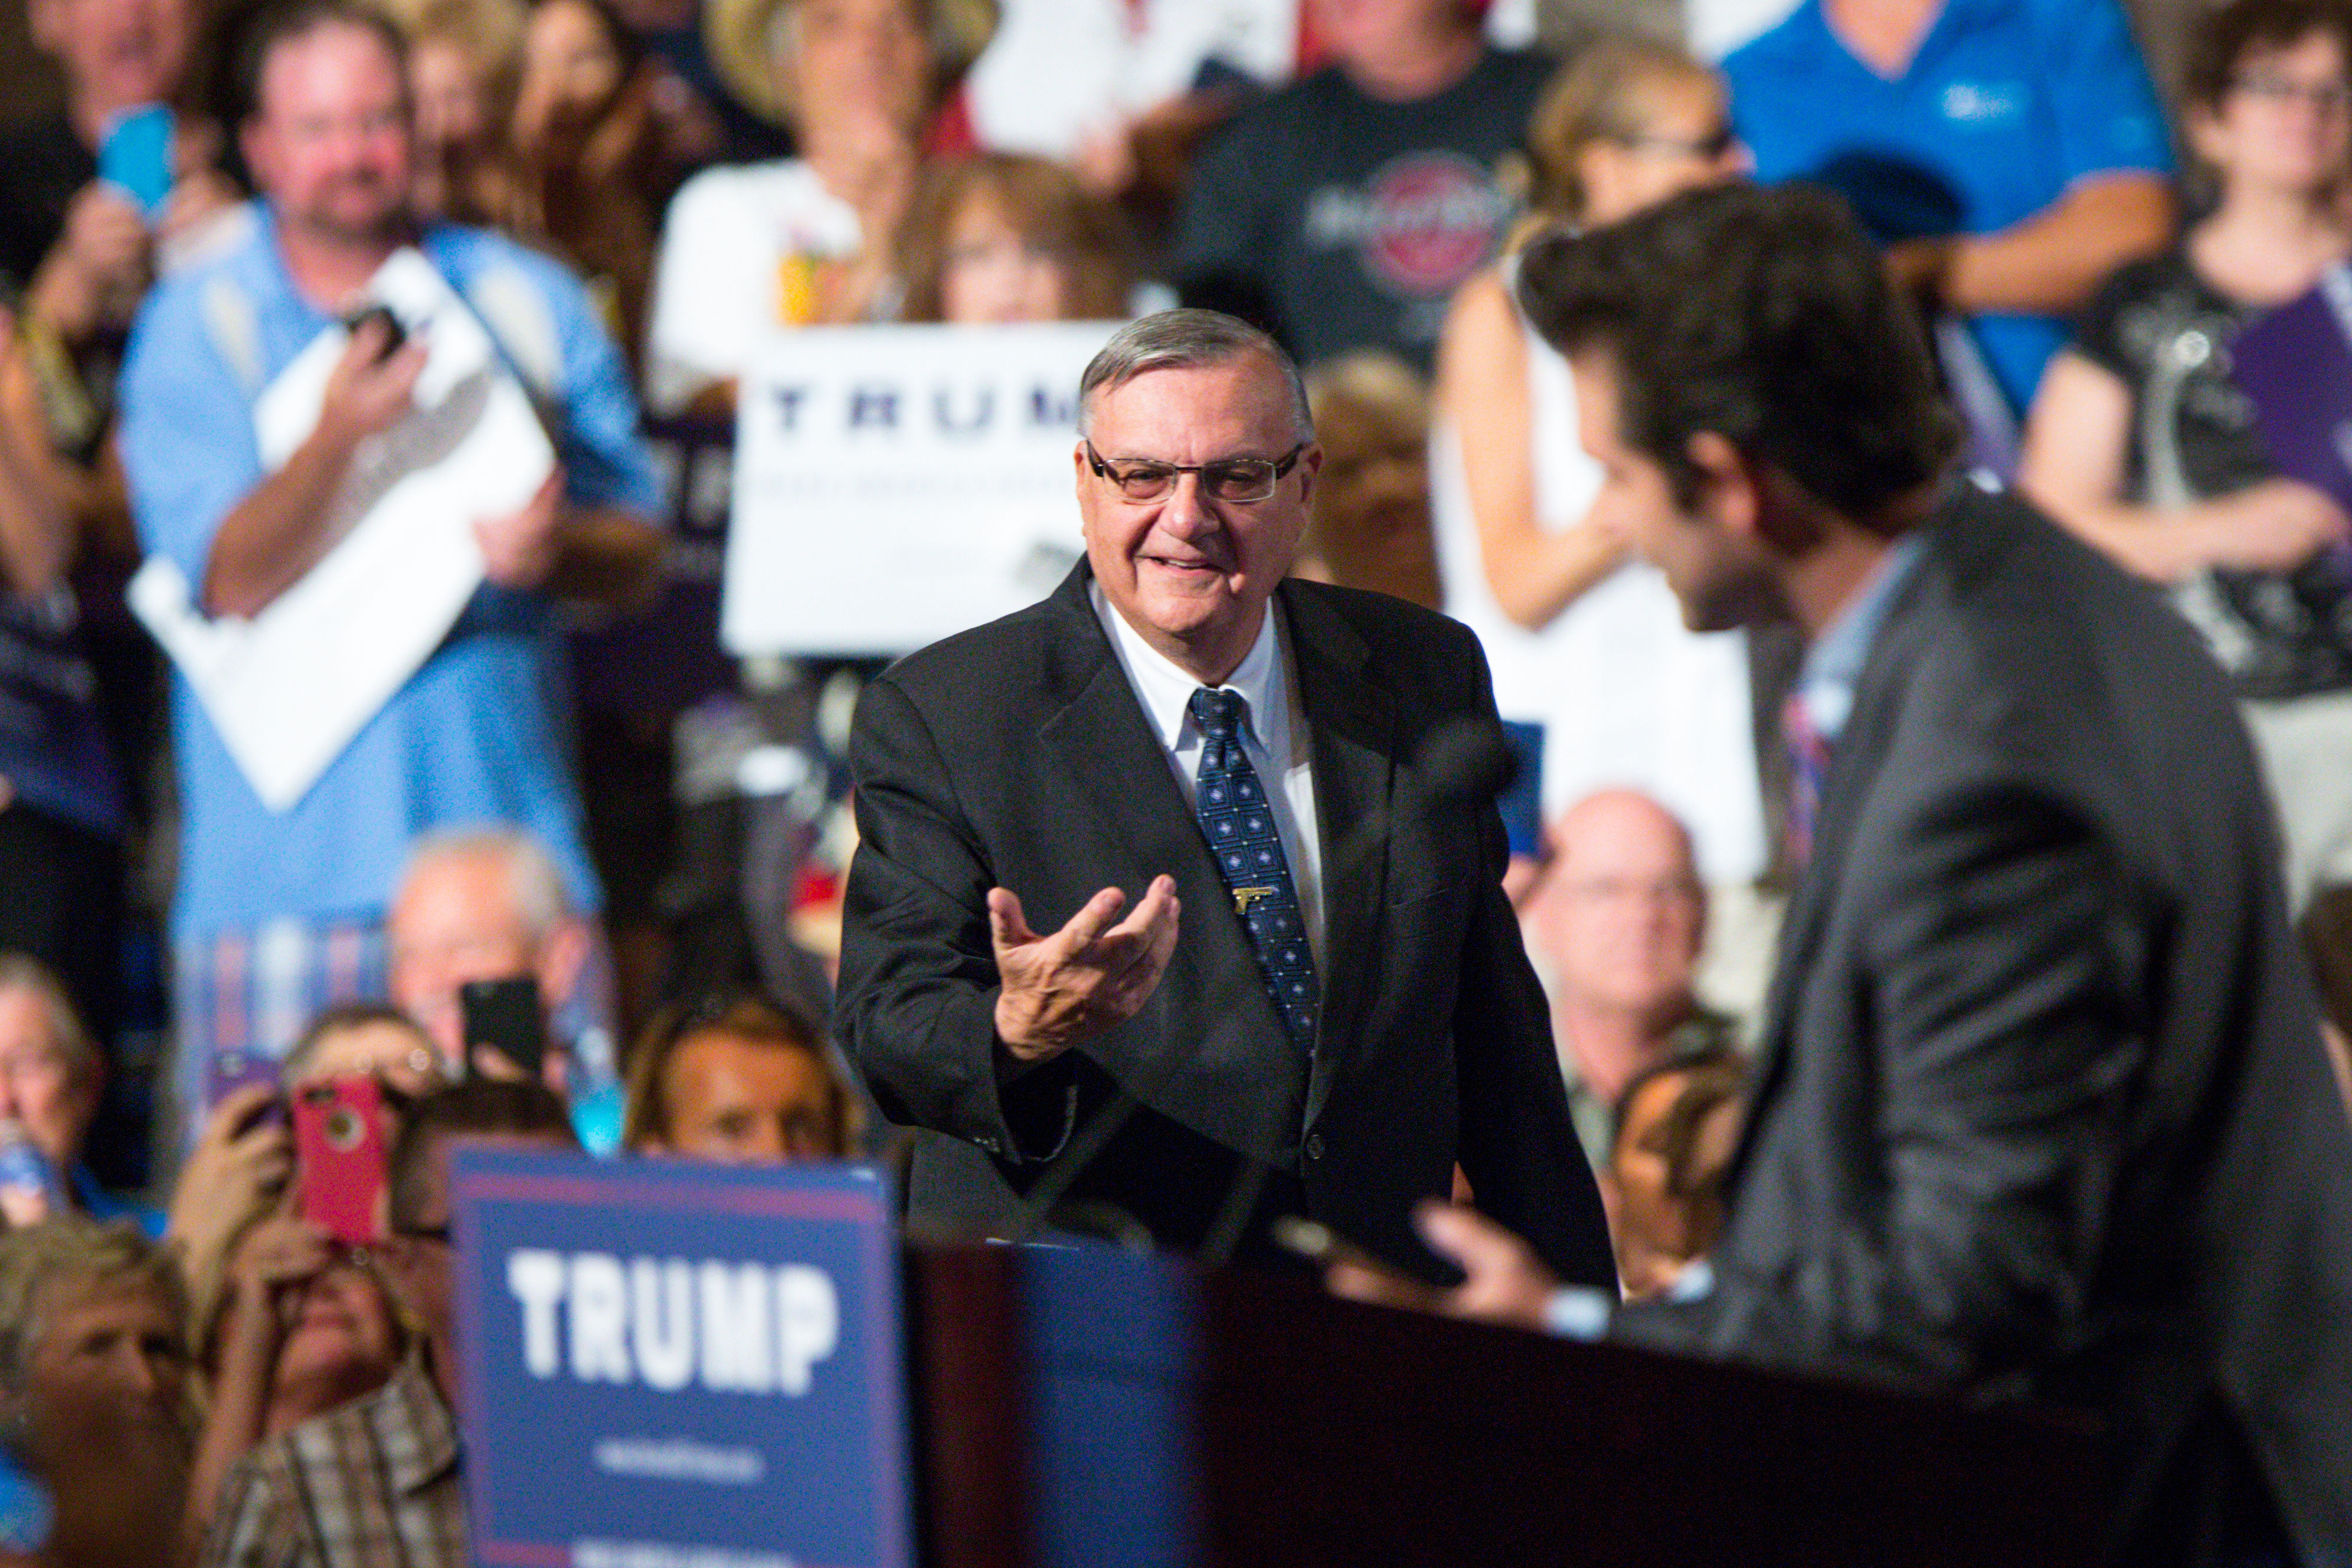 Maricopa County Sheriff Joe Arpaio takes the stage to introduce Republican presidential candidate Donald Trump at a political rally at the Phoenix Convention Center on July 11, 2015 in Phoenix, Arizona.